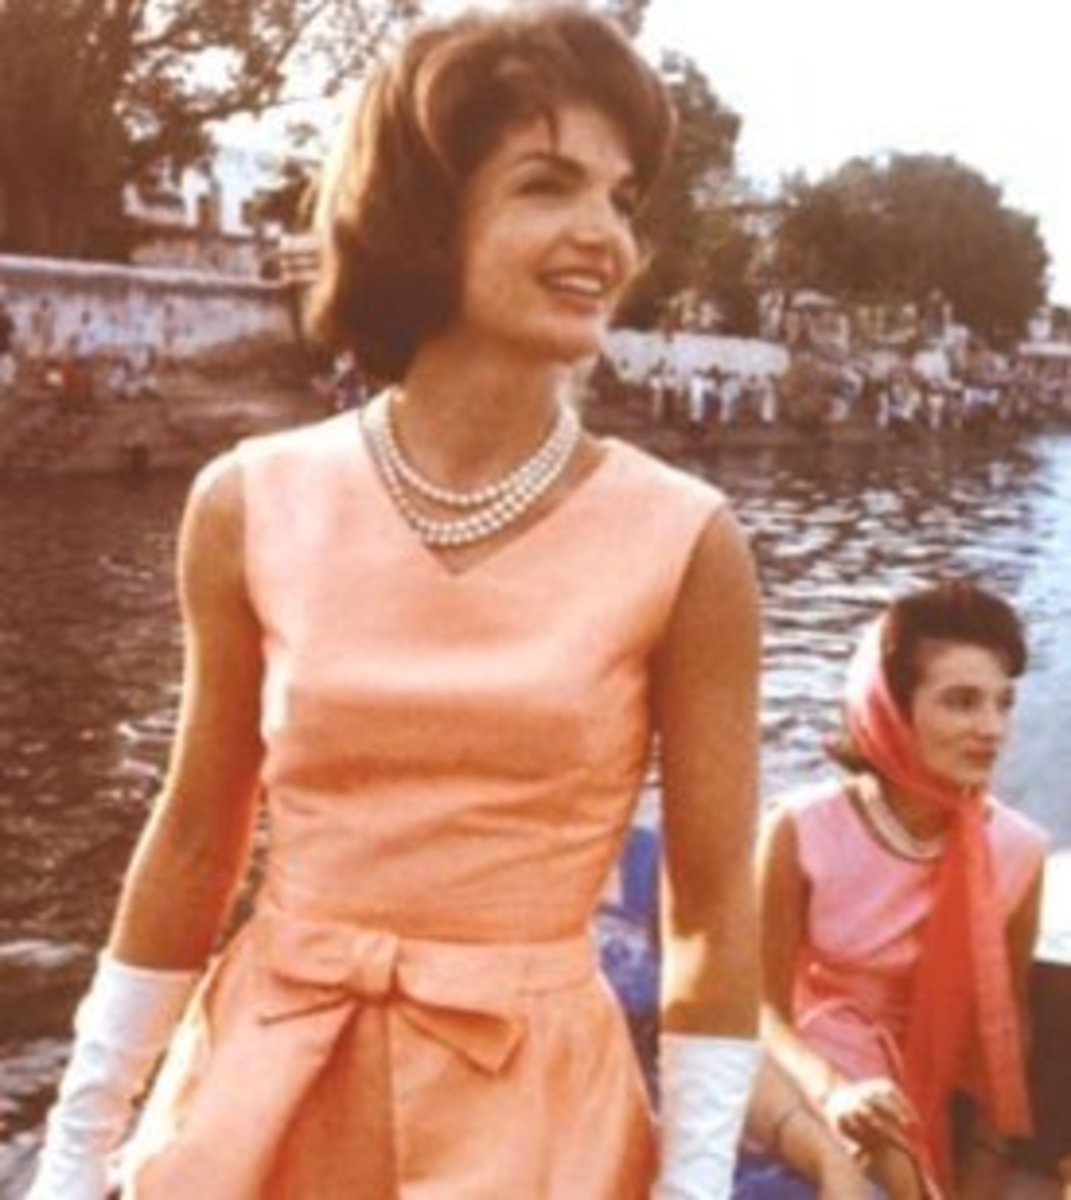 Jackie Kennedy wearing her three strand pearl necklace with her sister Lee in the background